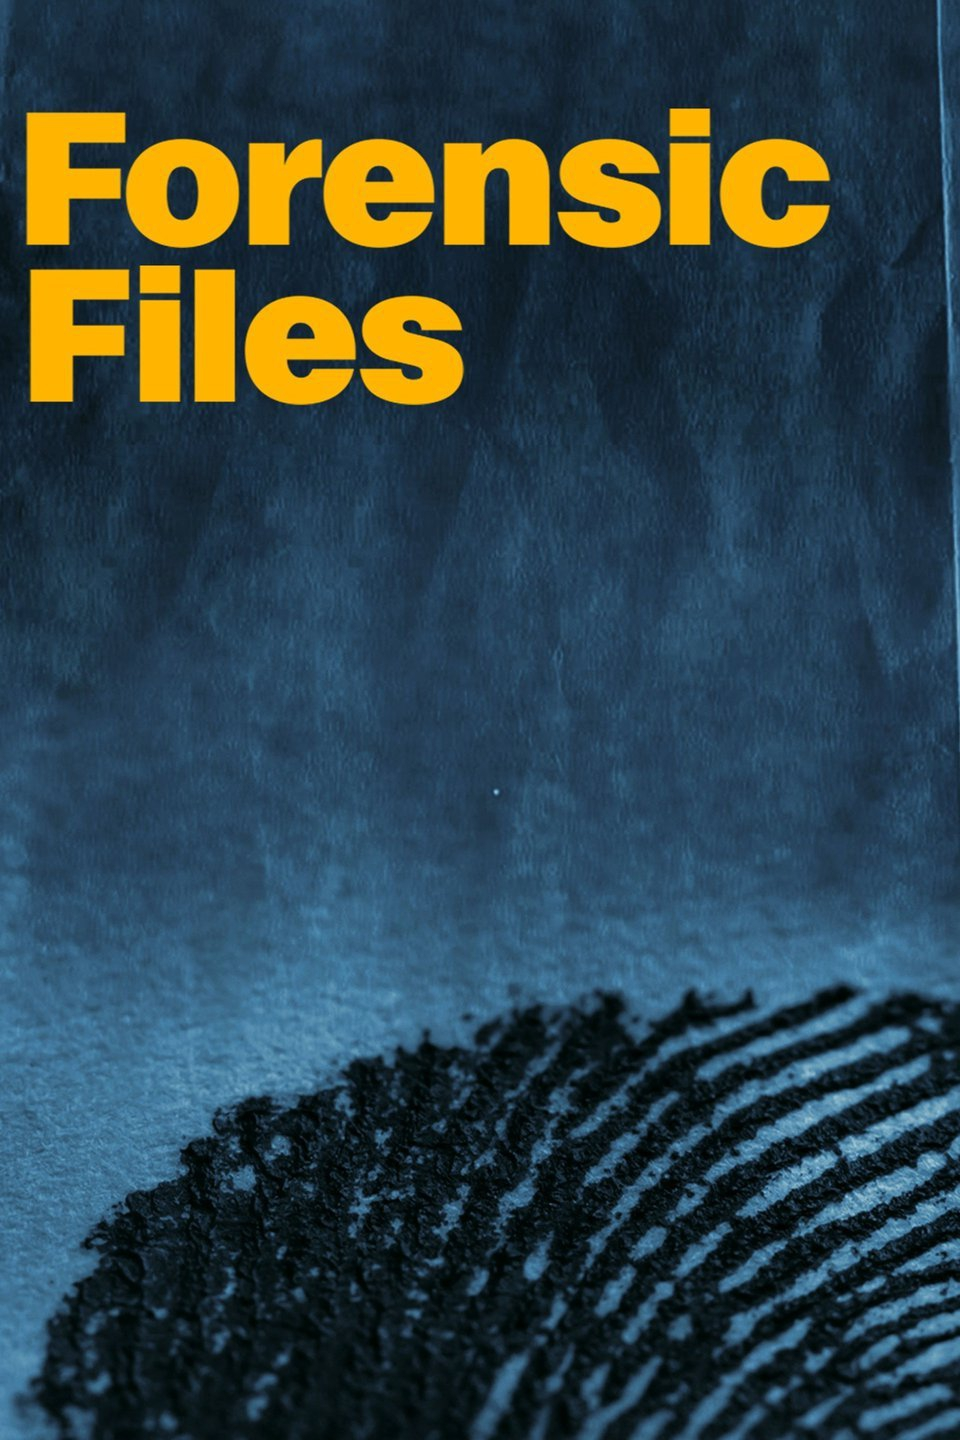 Forensic Files Season 2 Episodes Streaming Online For Free The Roku Channel Roku